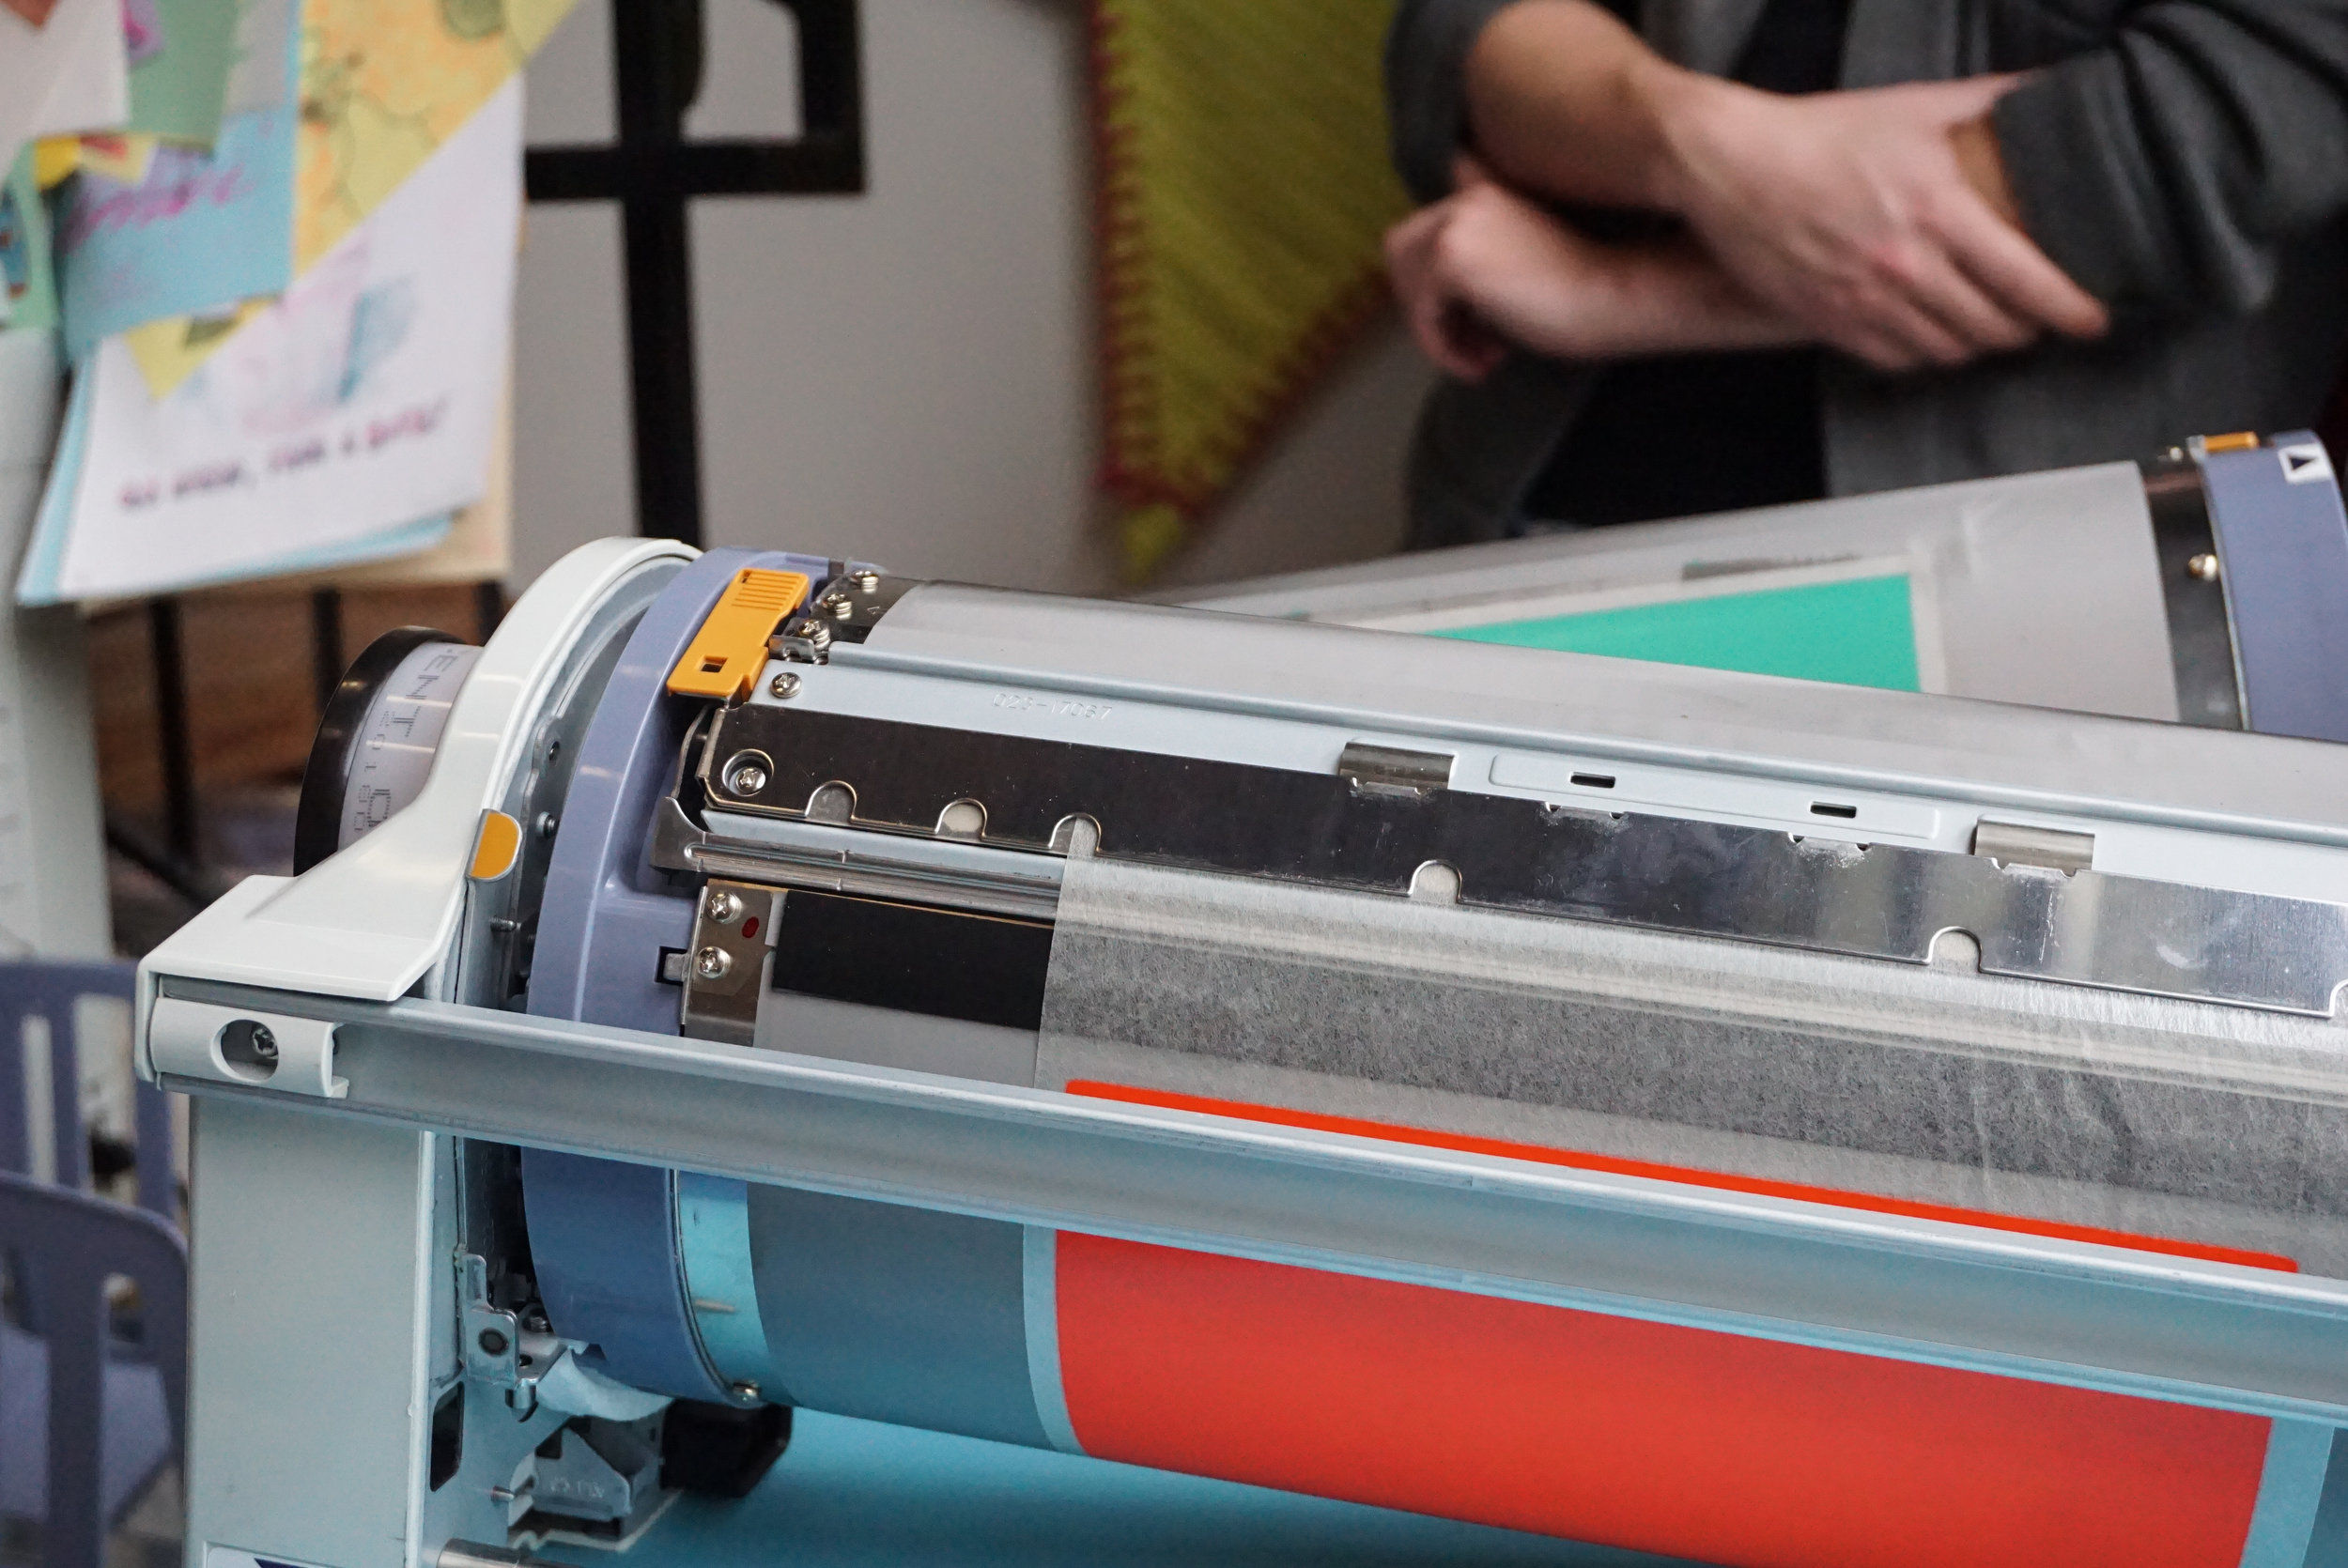 WeMake_Workshop_2018_KBB_Riso-17.jpg